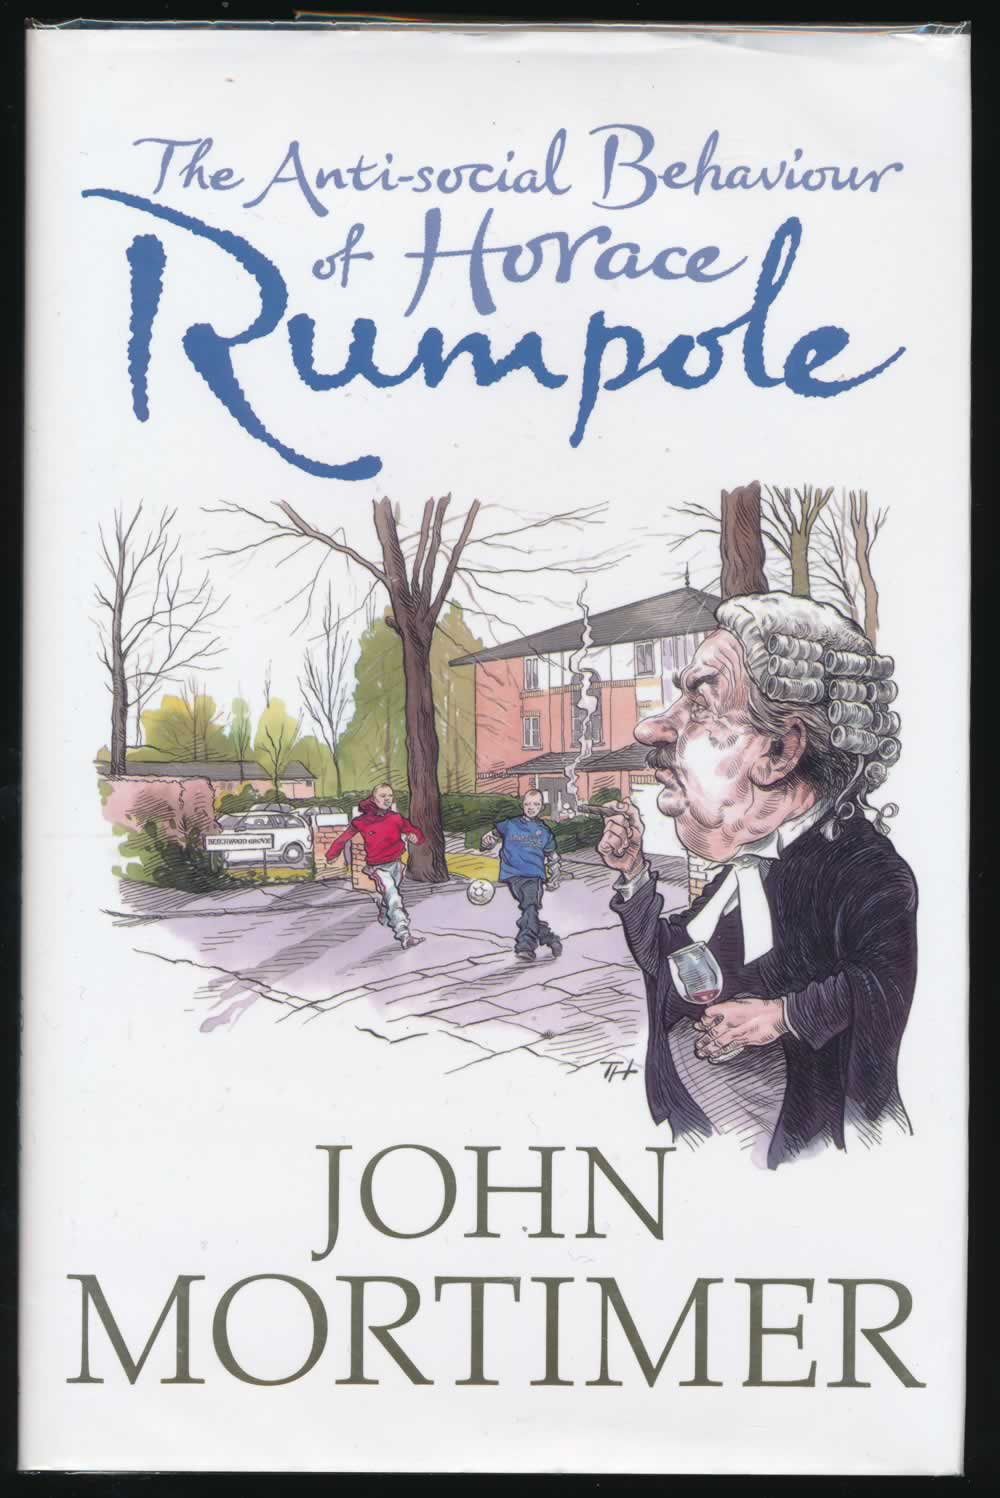 The anti-social behaviour of Horace Rumpole